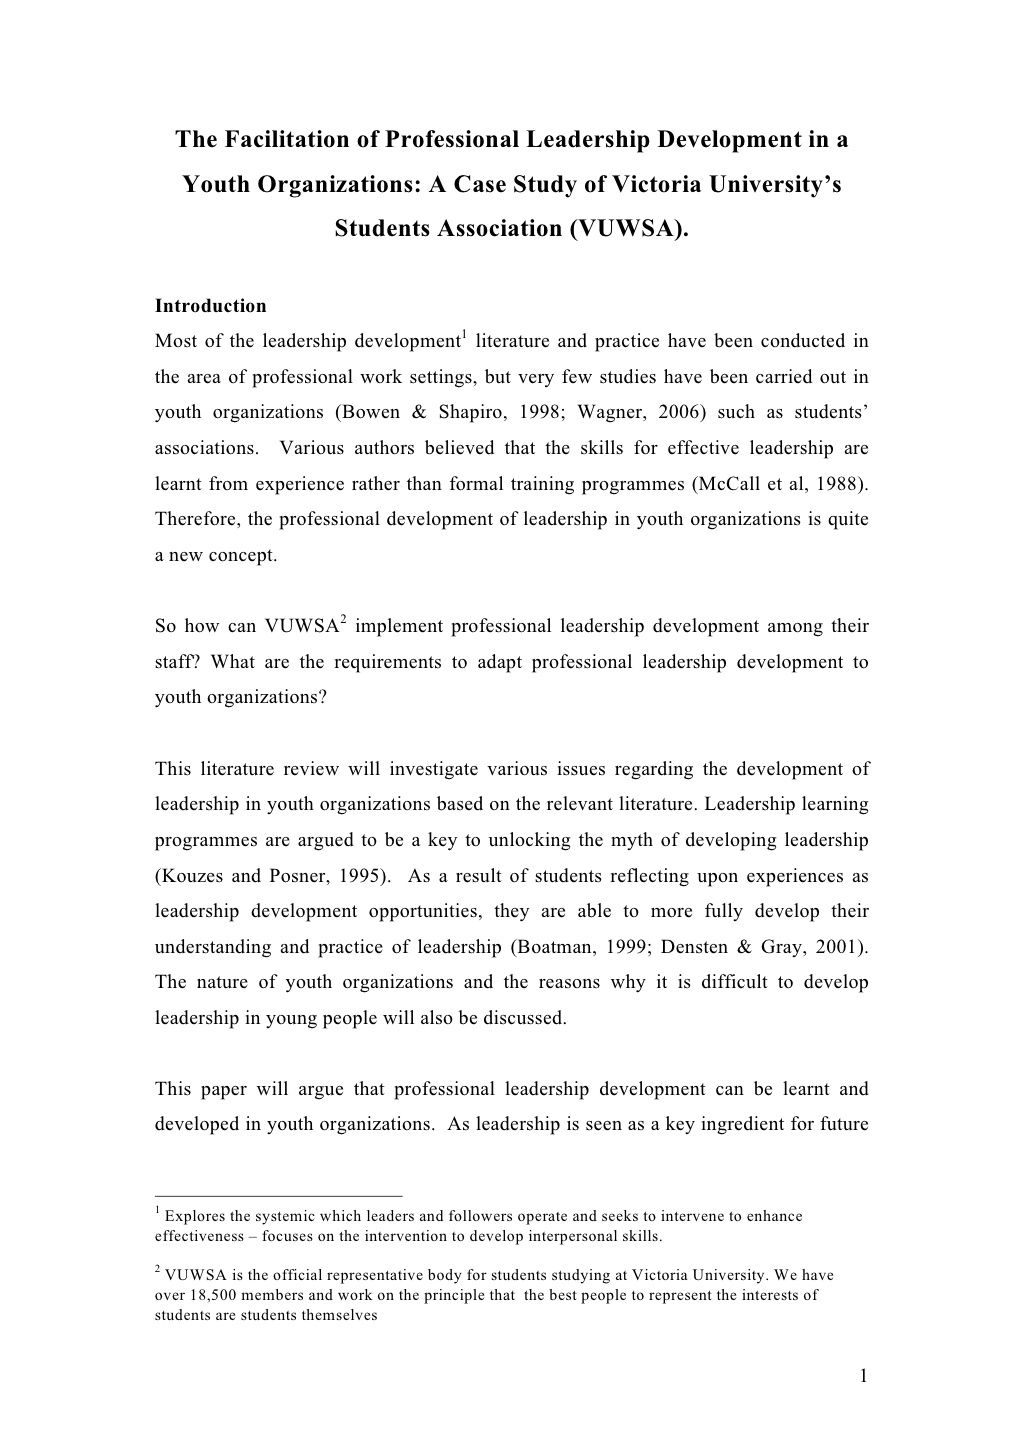 apa style writing dissertation apa style has special formatting  apa style has special formatting rules for the titles of the